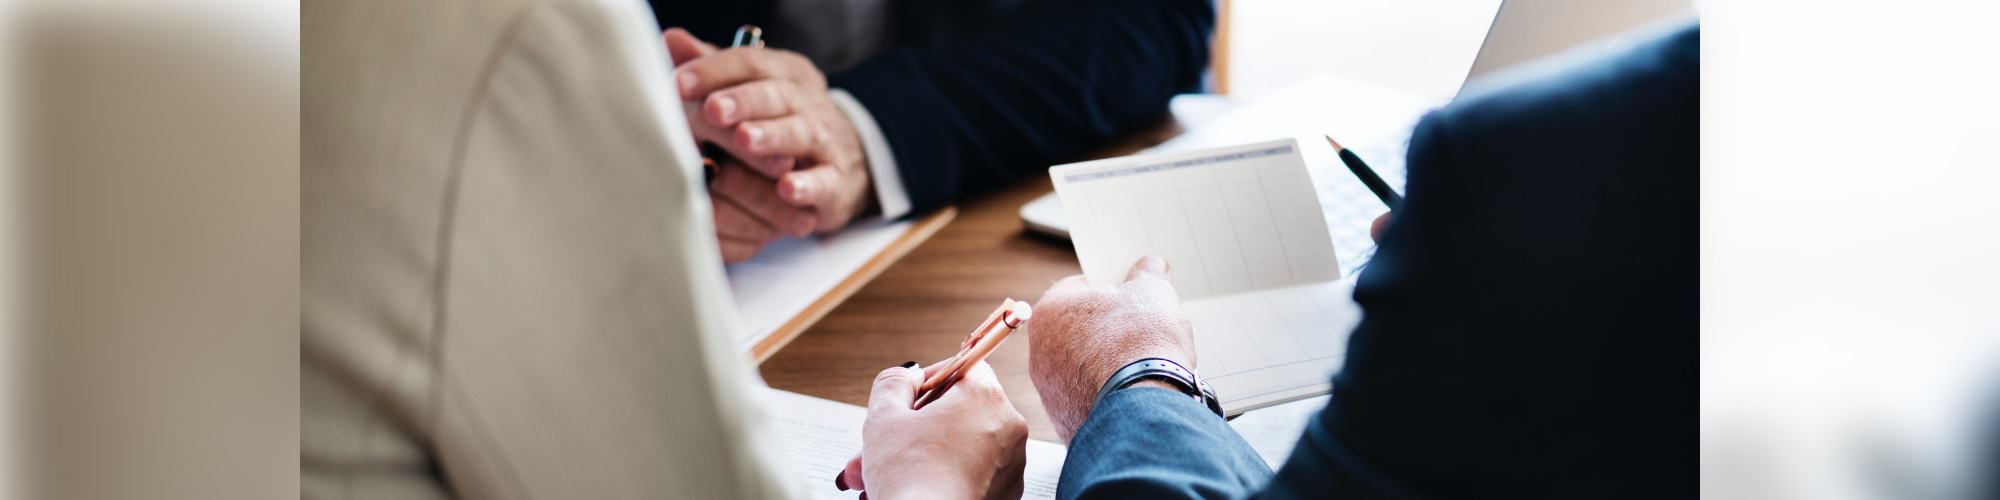 How the CFO role is evolving to meet today's business demands